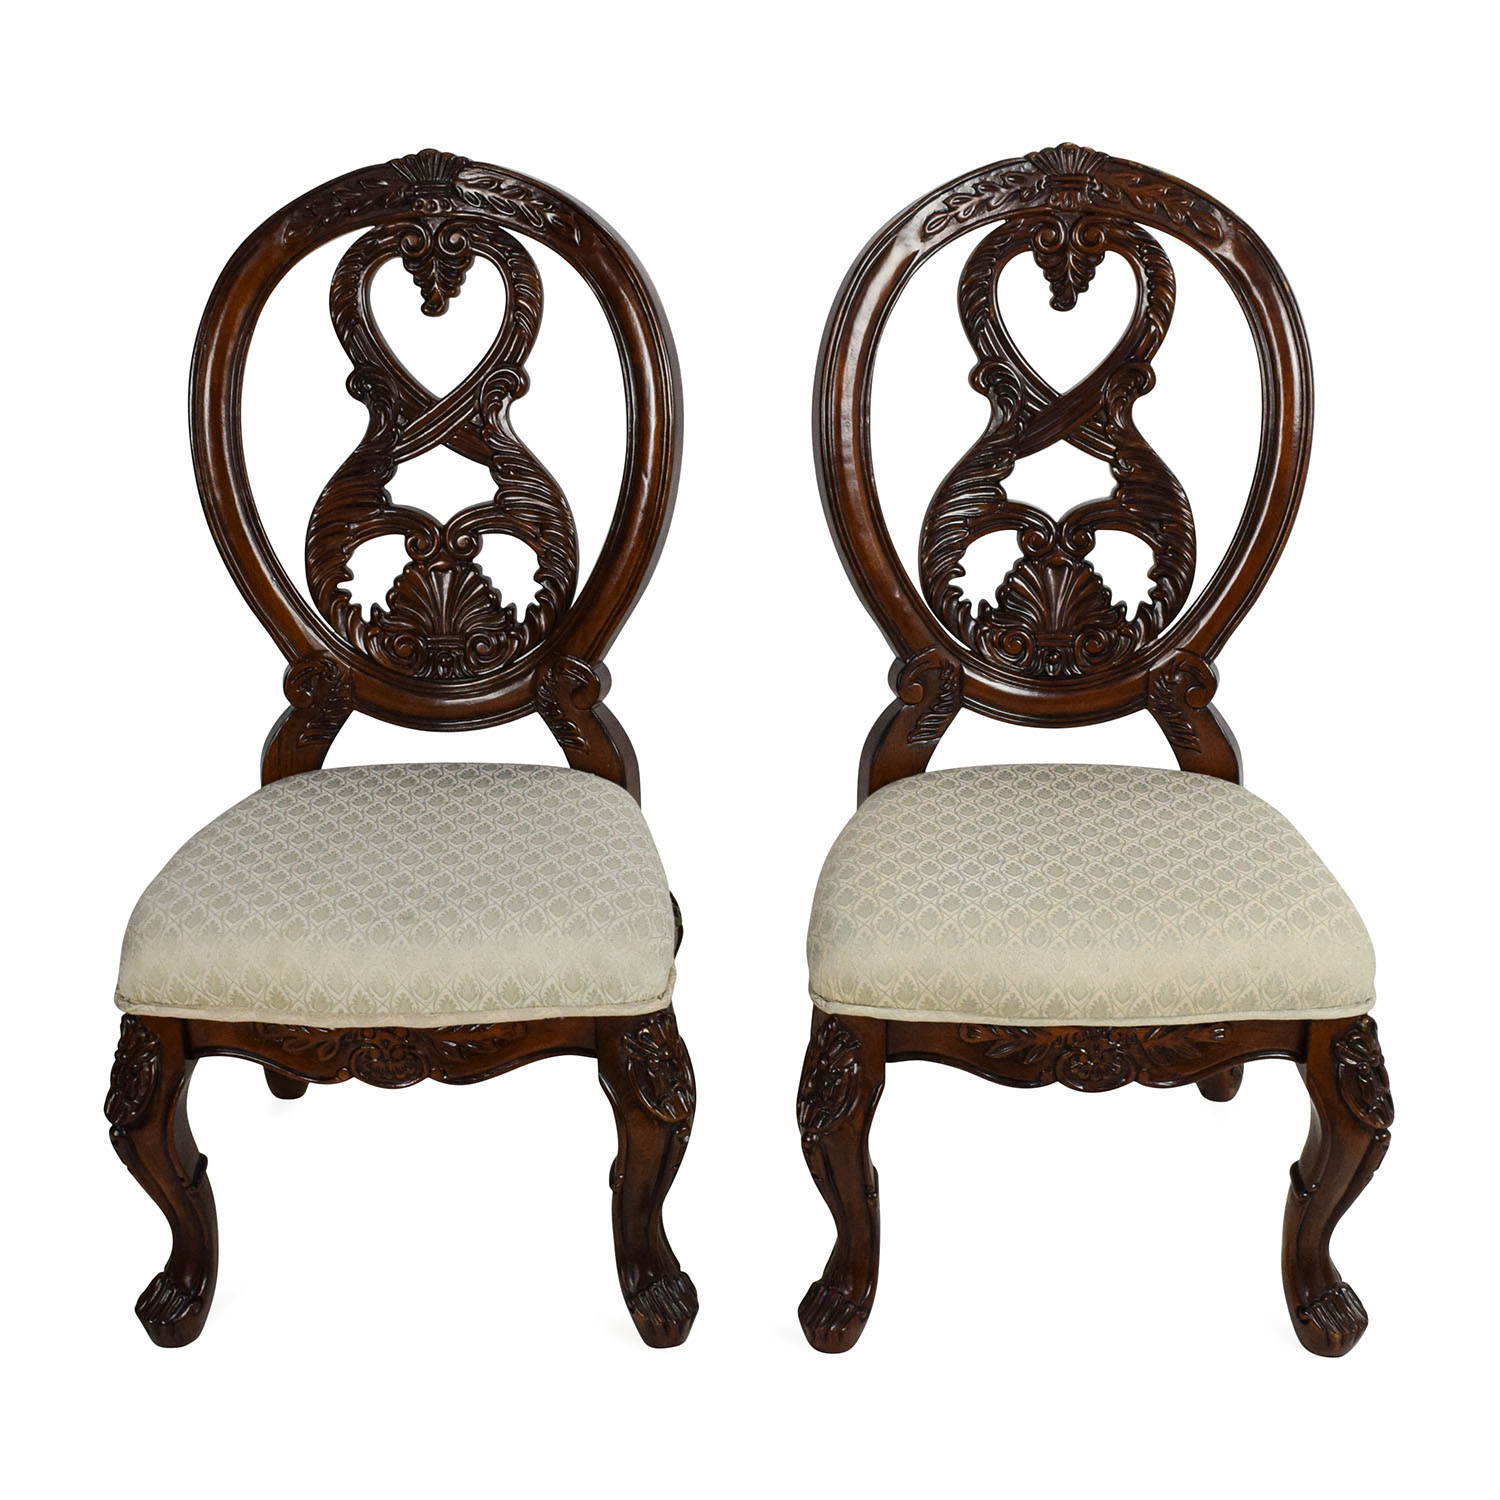 ... Tuscany II Tuscany II Traditional Dining Chair Pair ...  sc 1 st  Furnishare & 90% OFF - Tuscany II Tuscany II Traditional Dining Chair Pair / Chairs